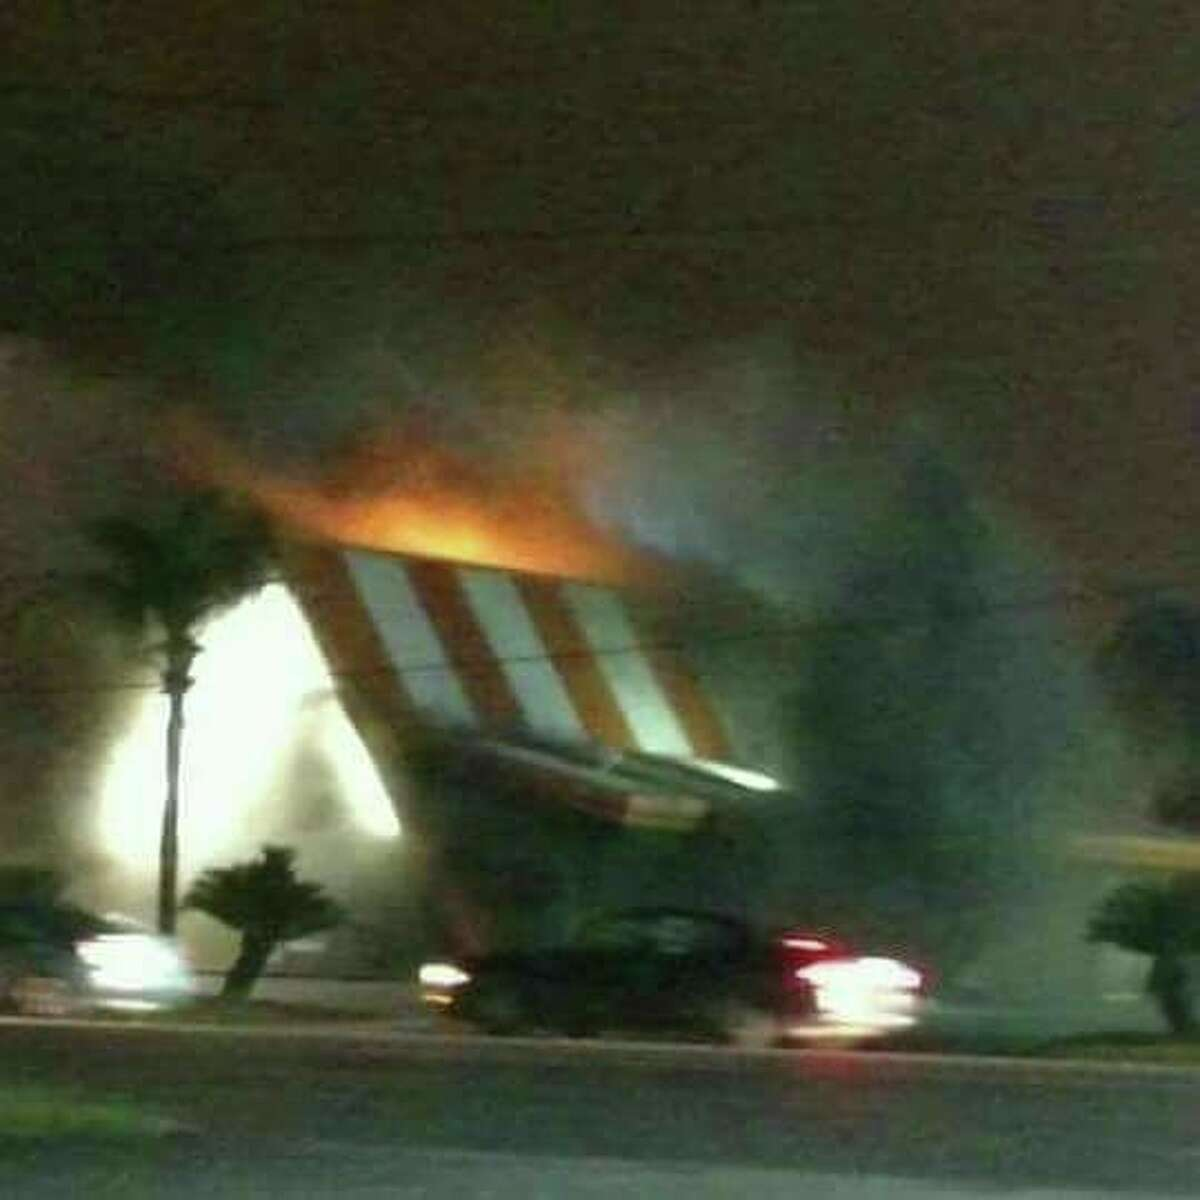 Facebook user Tatiana Maddox shared this photo of the May 31 Whataburger fire in Liberty on the Dayton News page.